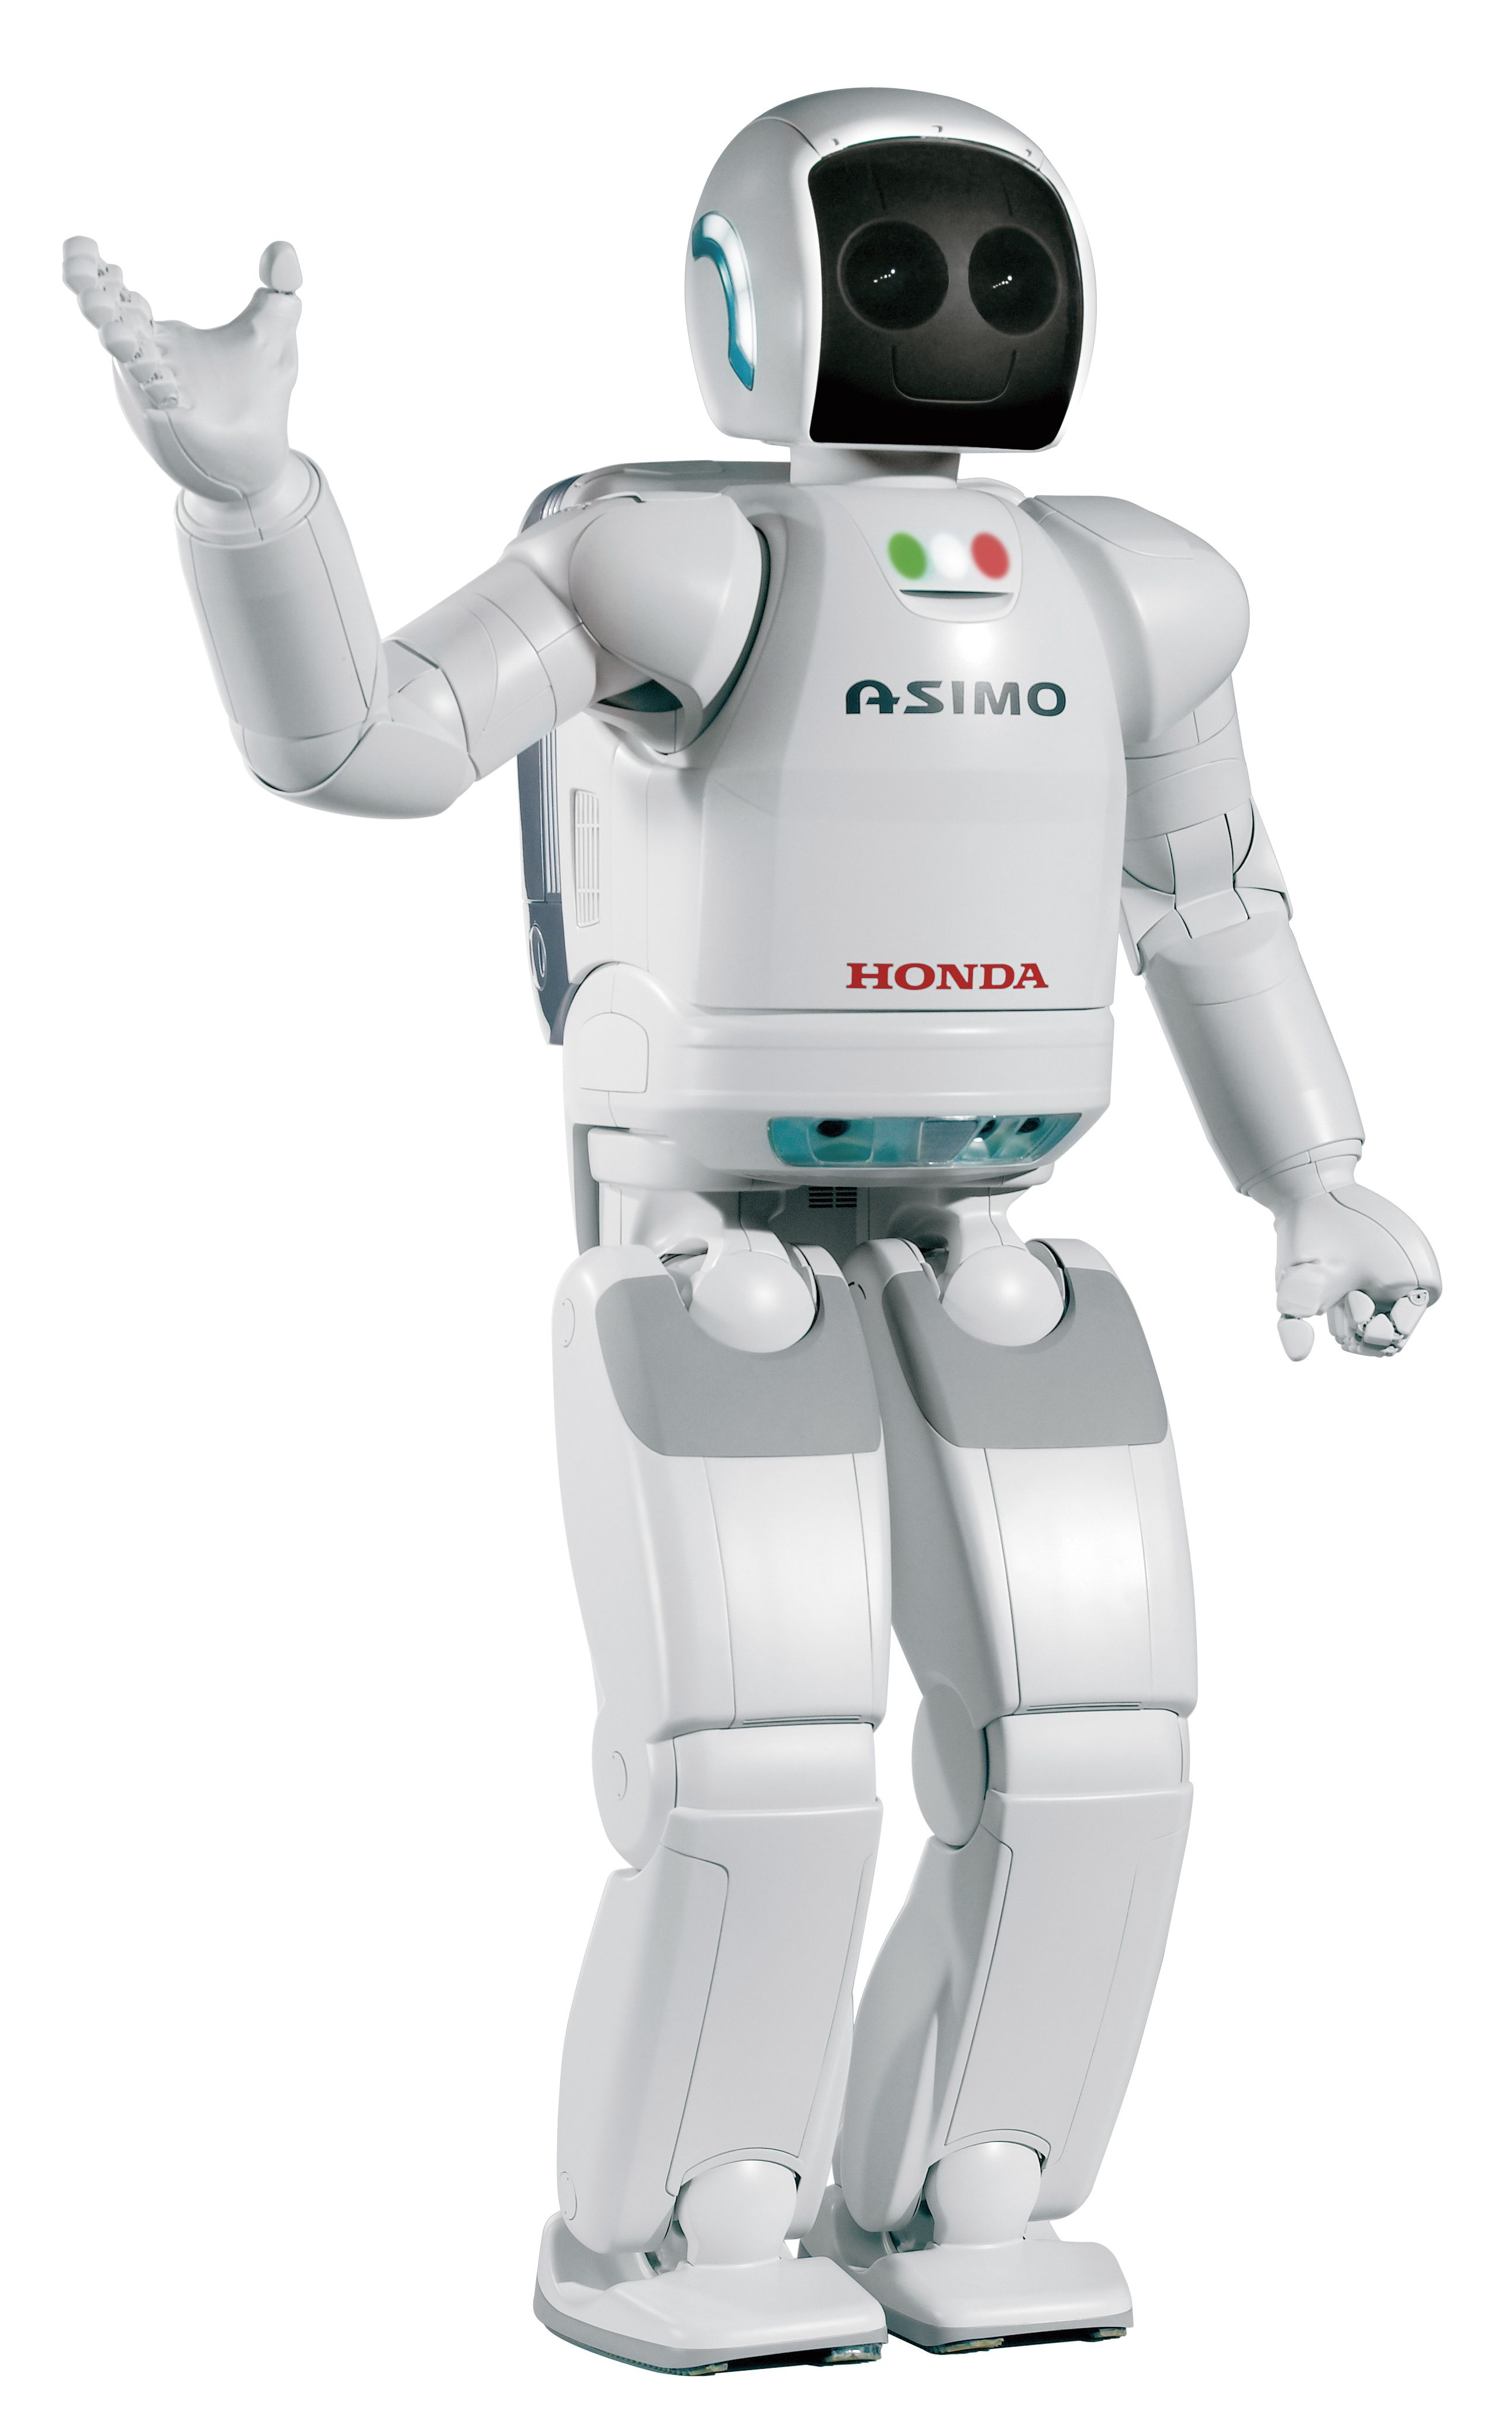 Honda Asimo Robot Is Designed To Help You Out Around The